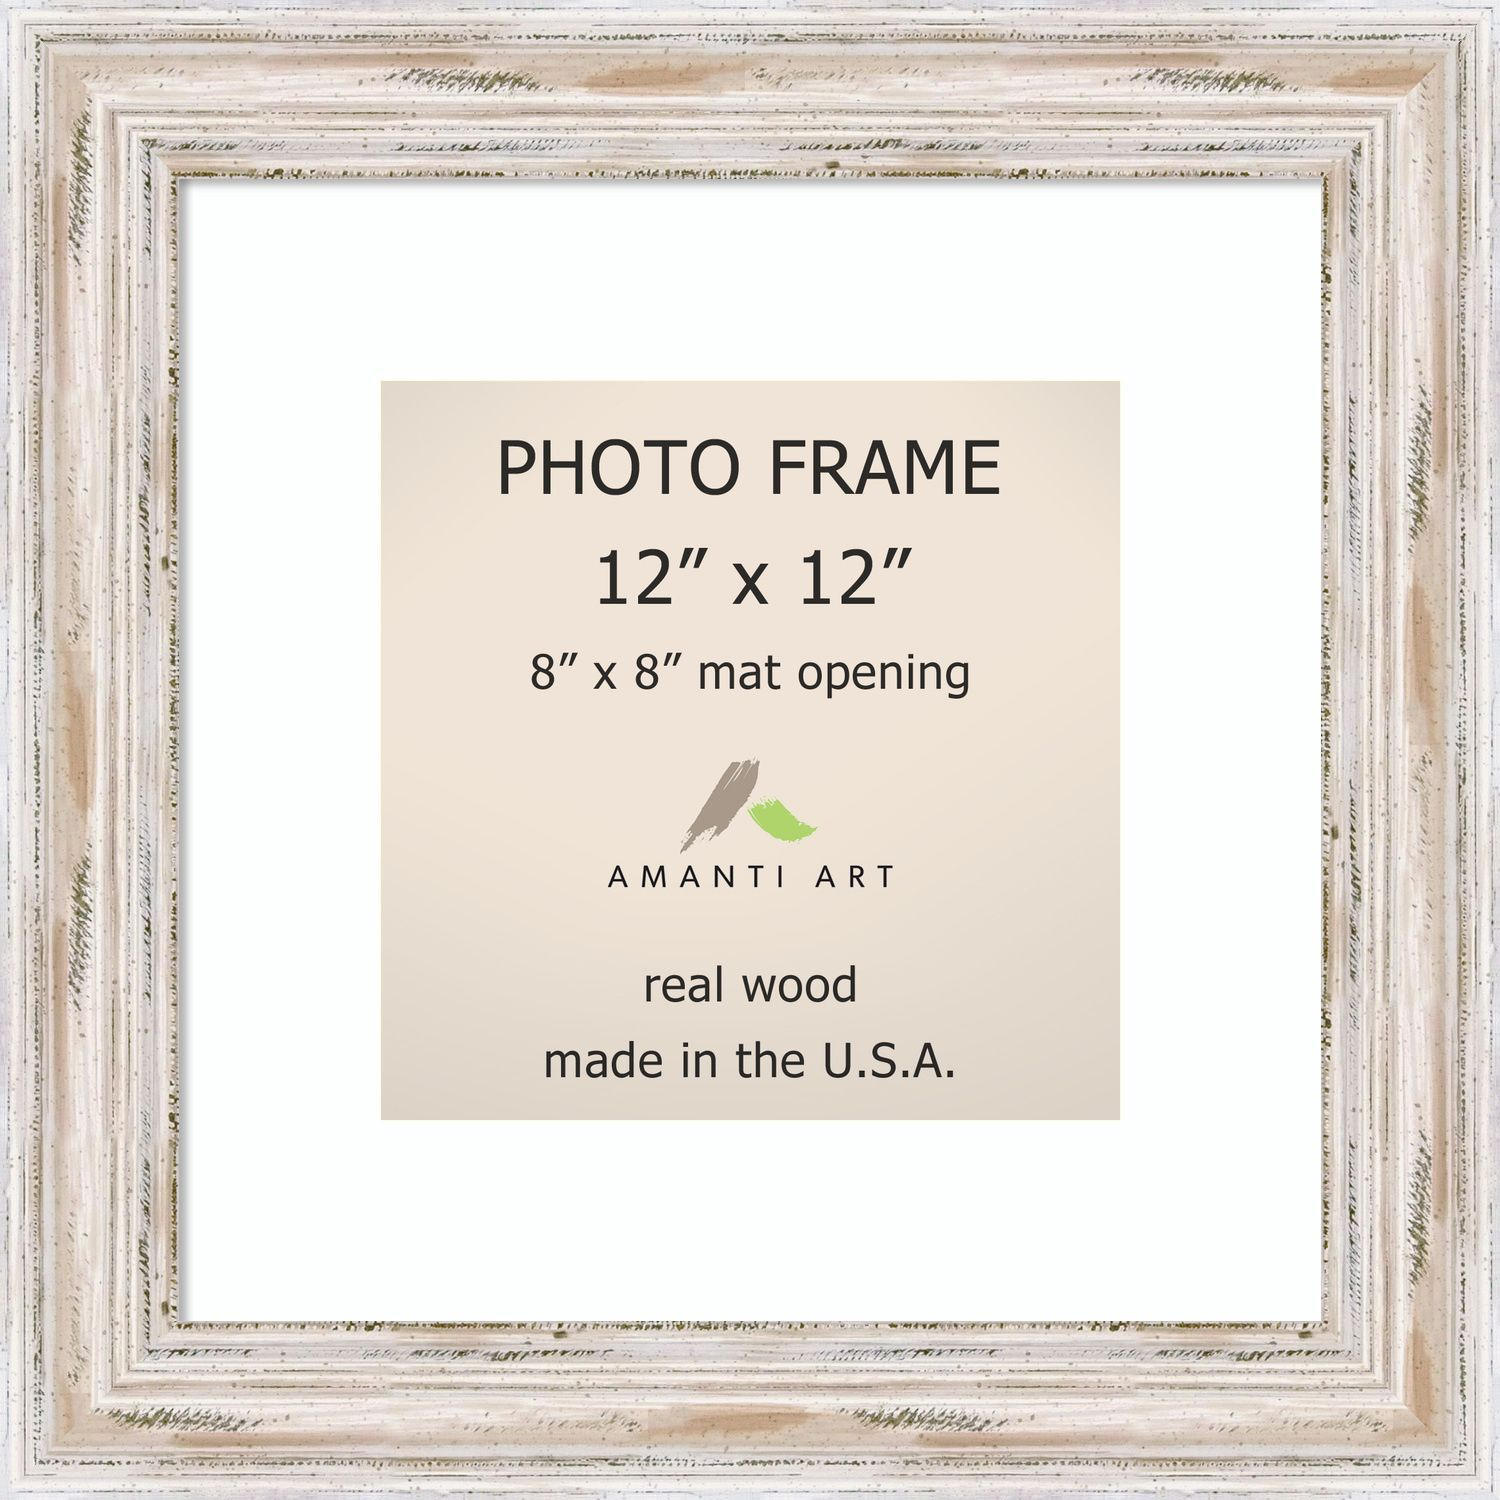 Online Shopping Bedding Furniture Electronics Jewelry Clothing More Black Photo Frames Picture Frame Sizes Black Picture Frames